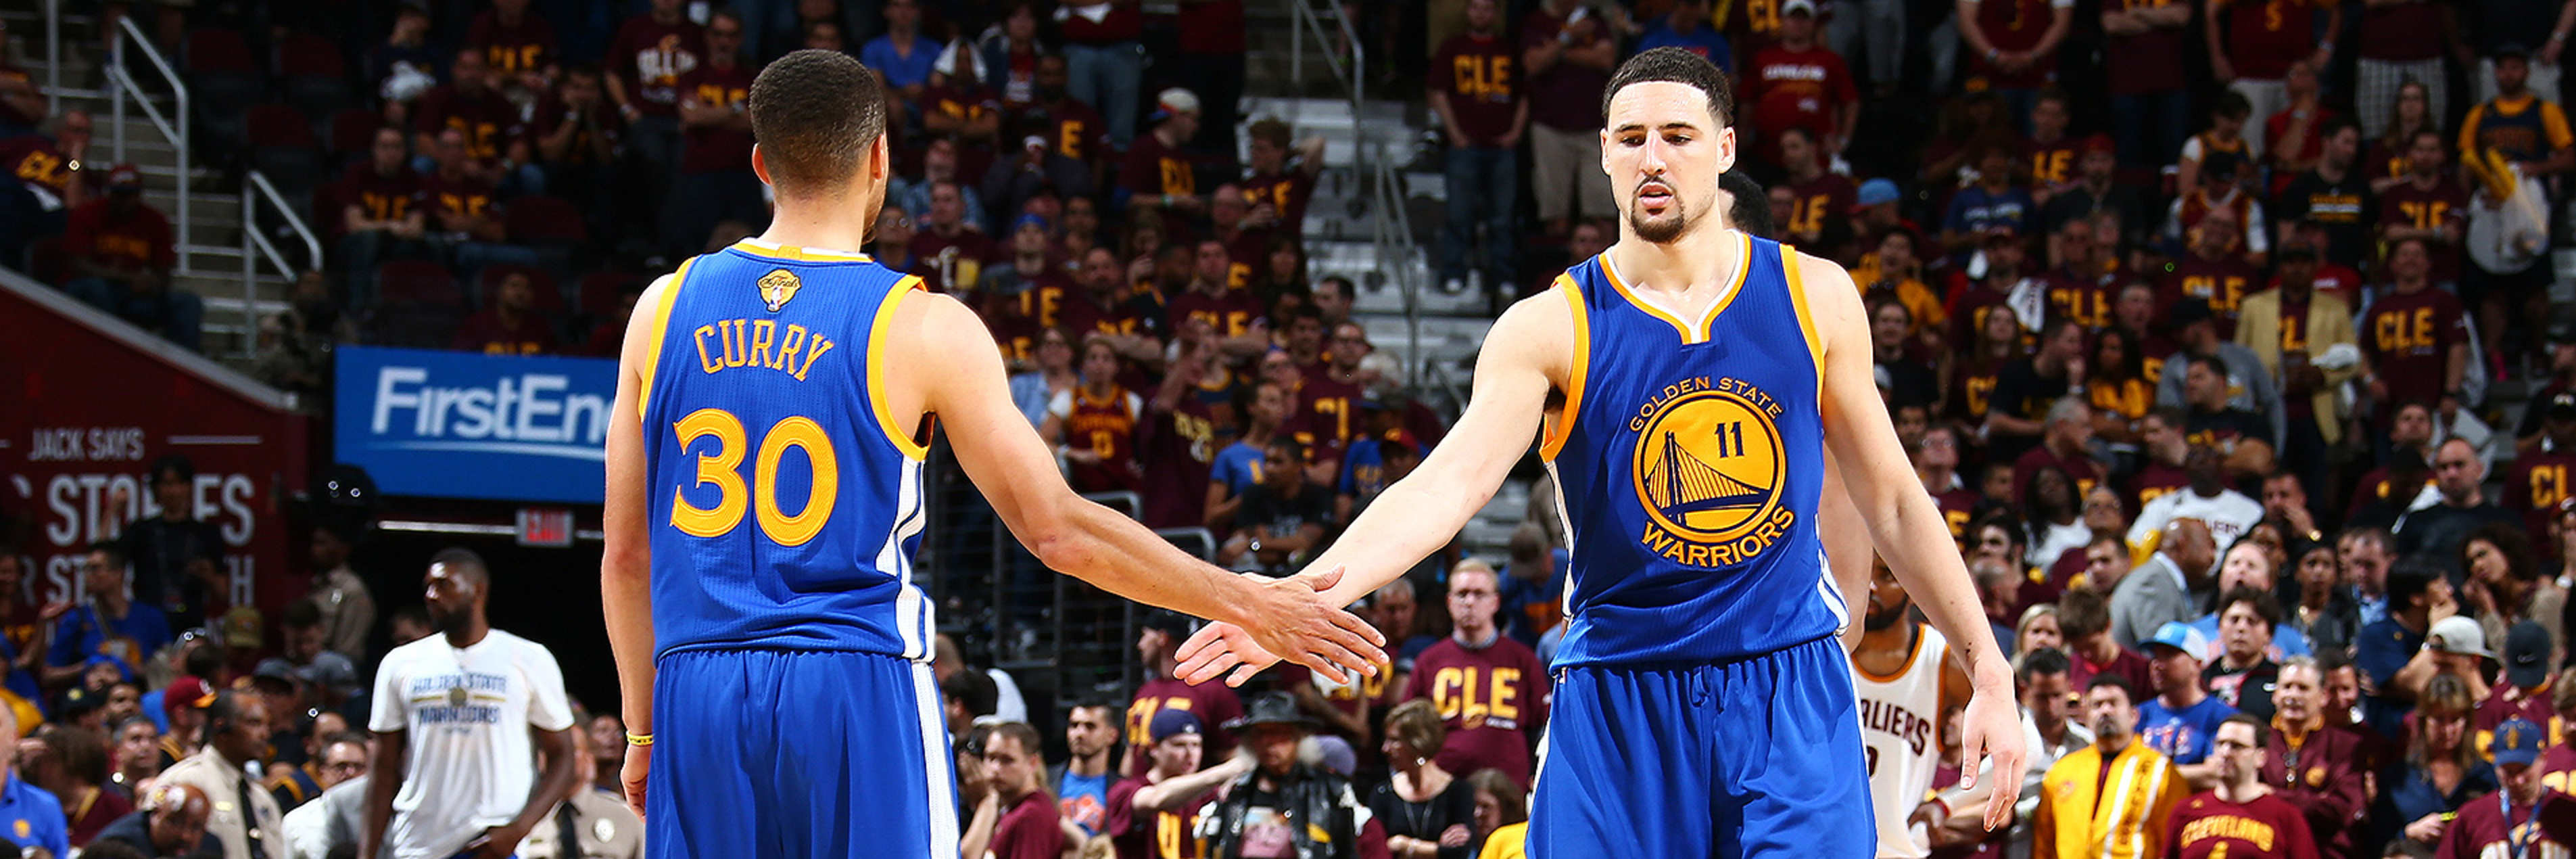 3810x1270 375 best Klay Thompson images on Pinterest | Golden state warriors .